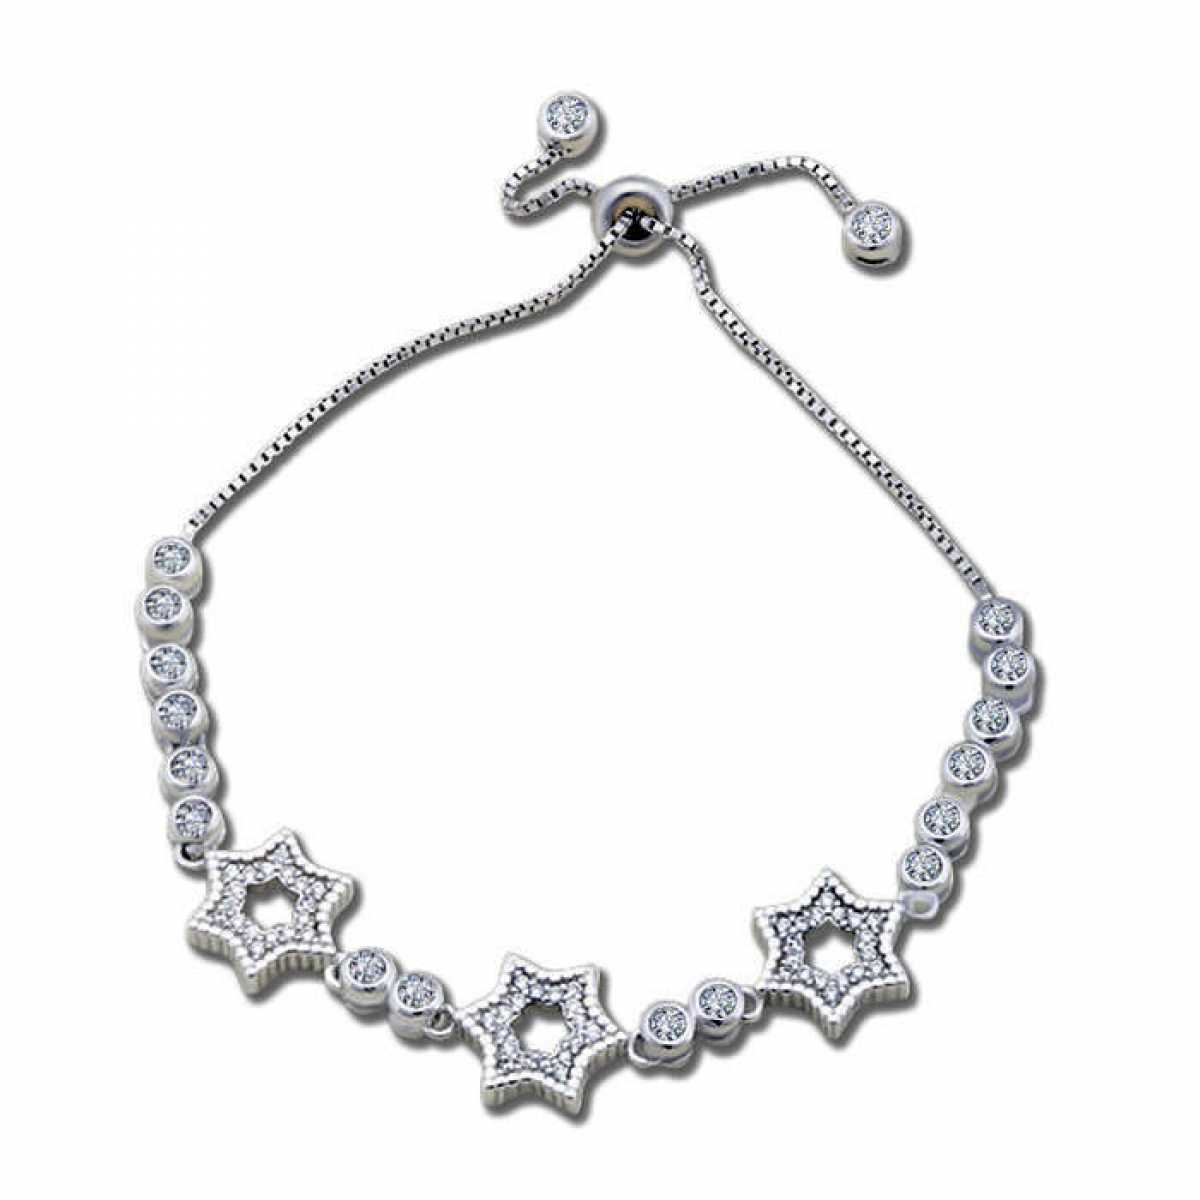 Three Star In Circle Silver Bracelet